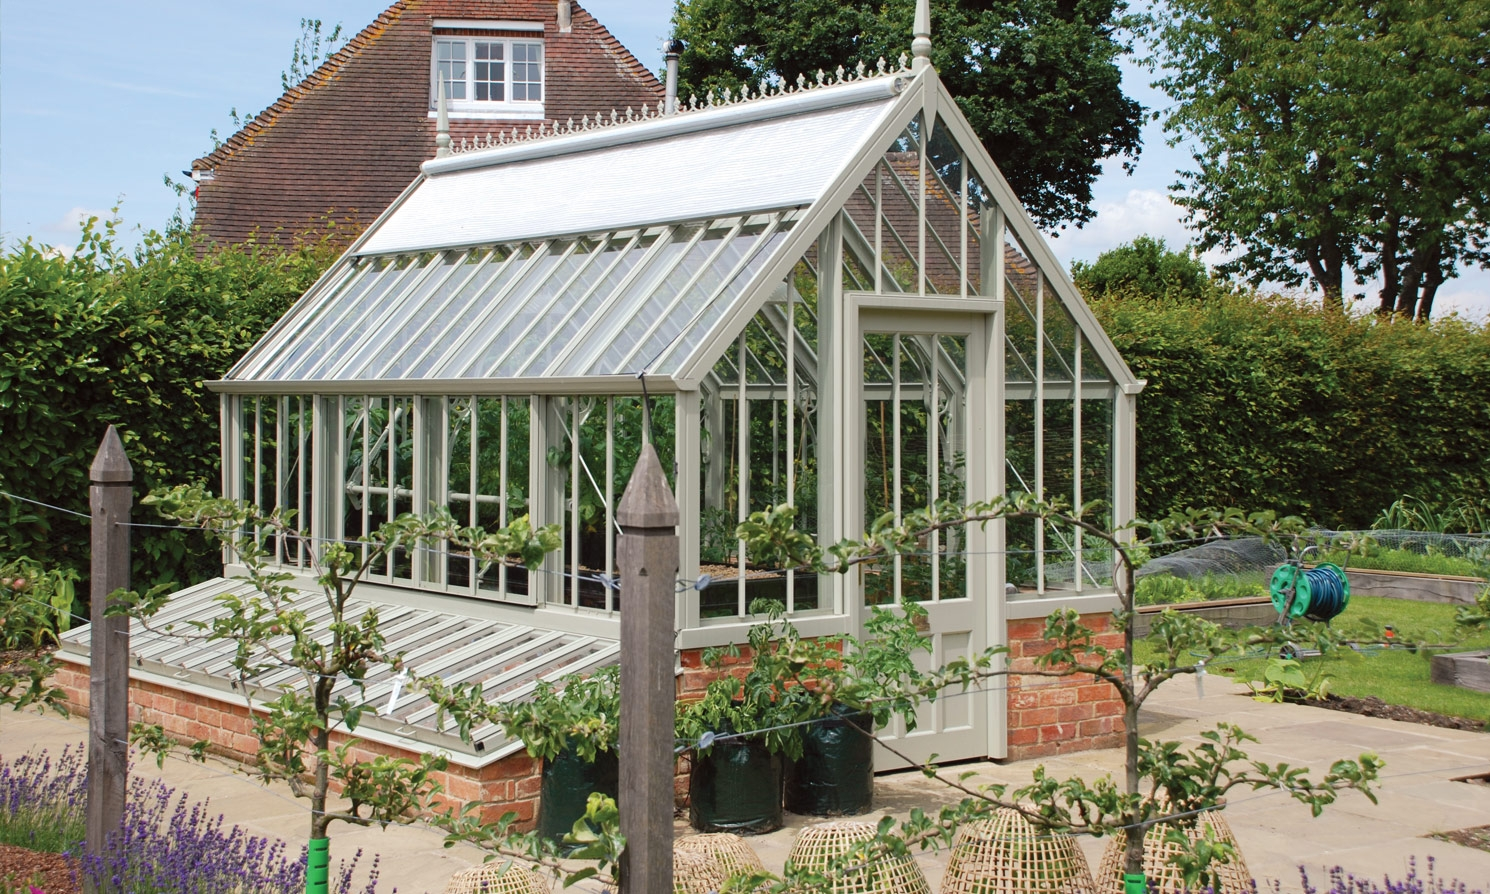 national trust scotney greenhouse in wood sage 330